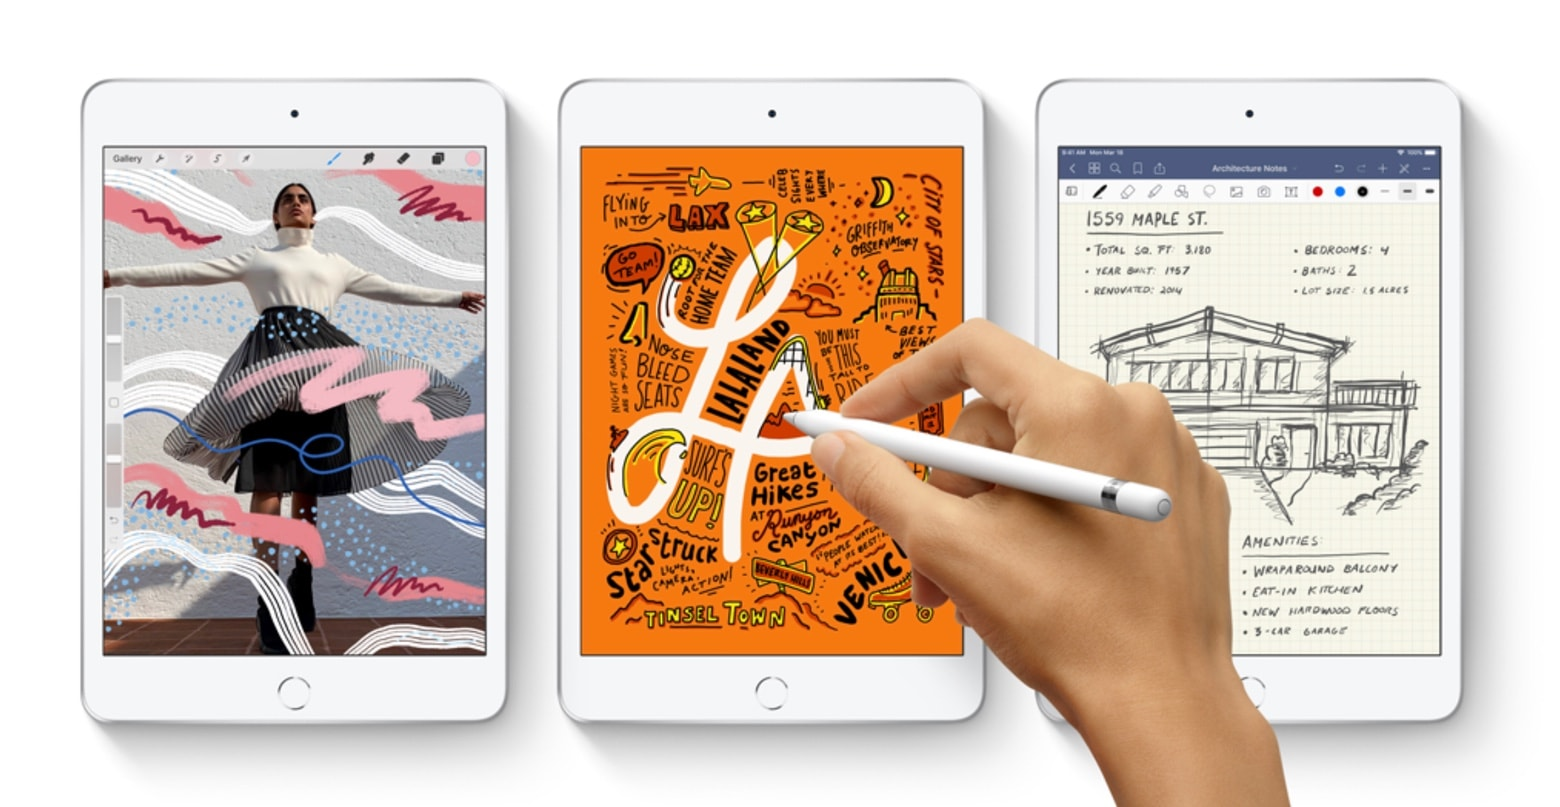 2021 iPad mini screen size might expand to 8.4 inches